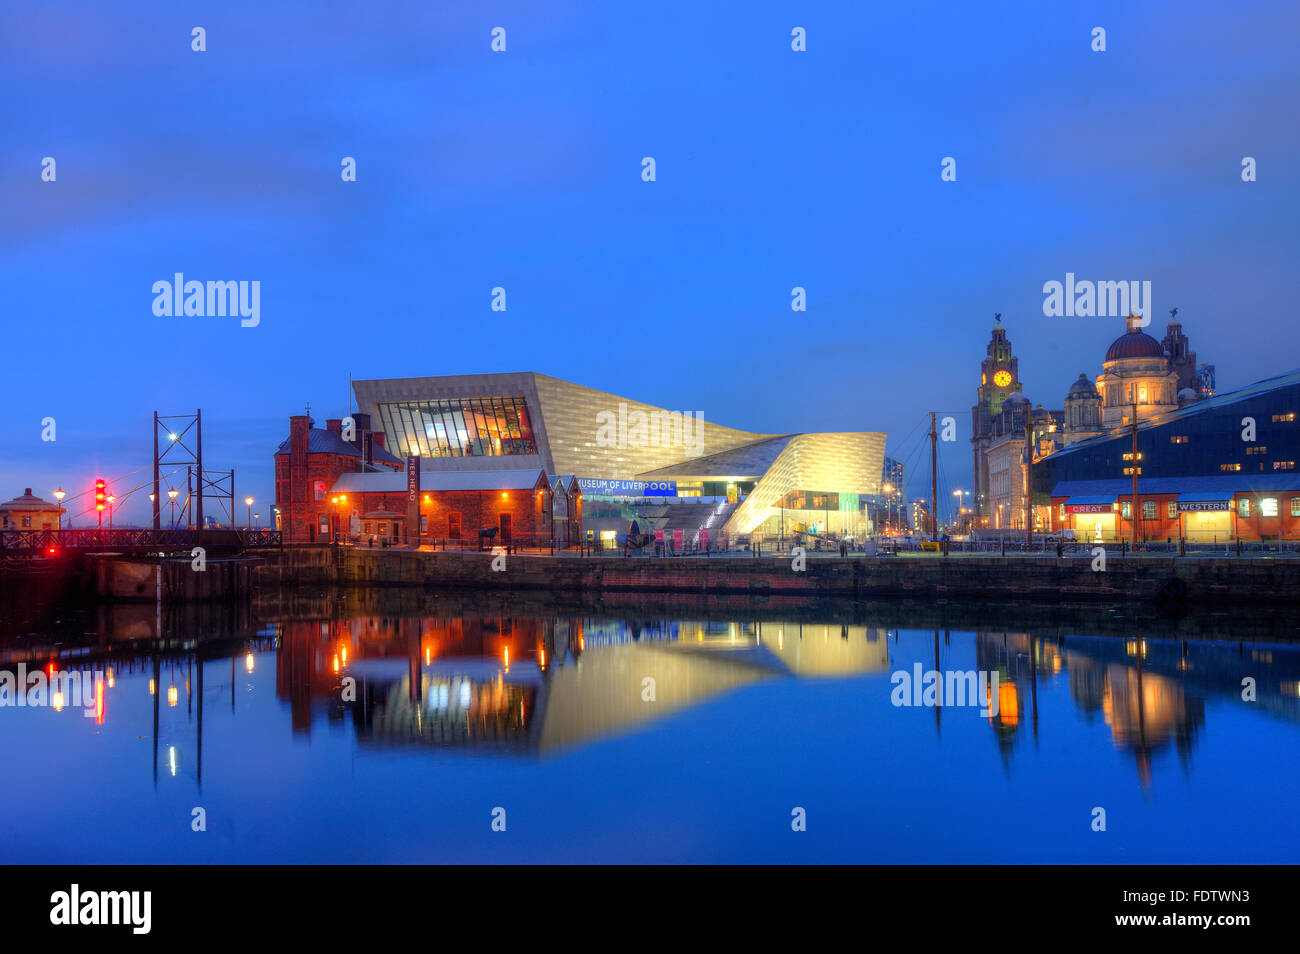 The Museum of Liverpool from the Albert Dock, Liverpool, Merseyside - Stock Image